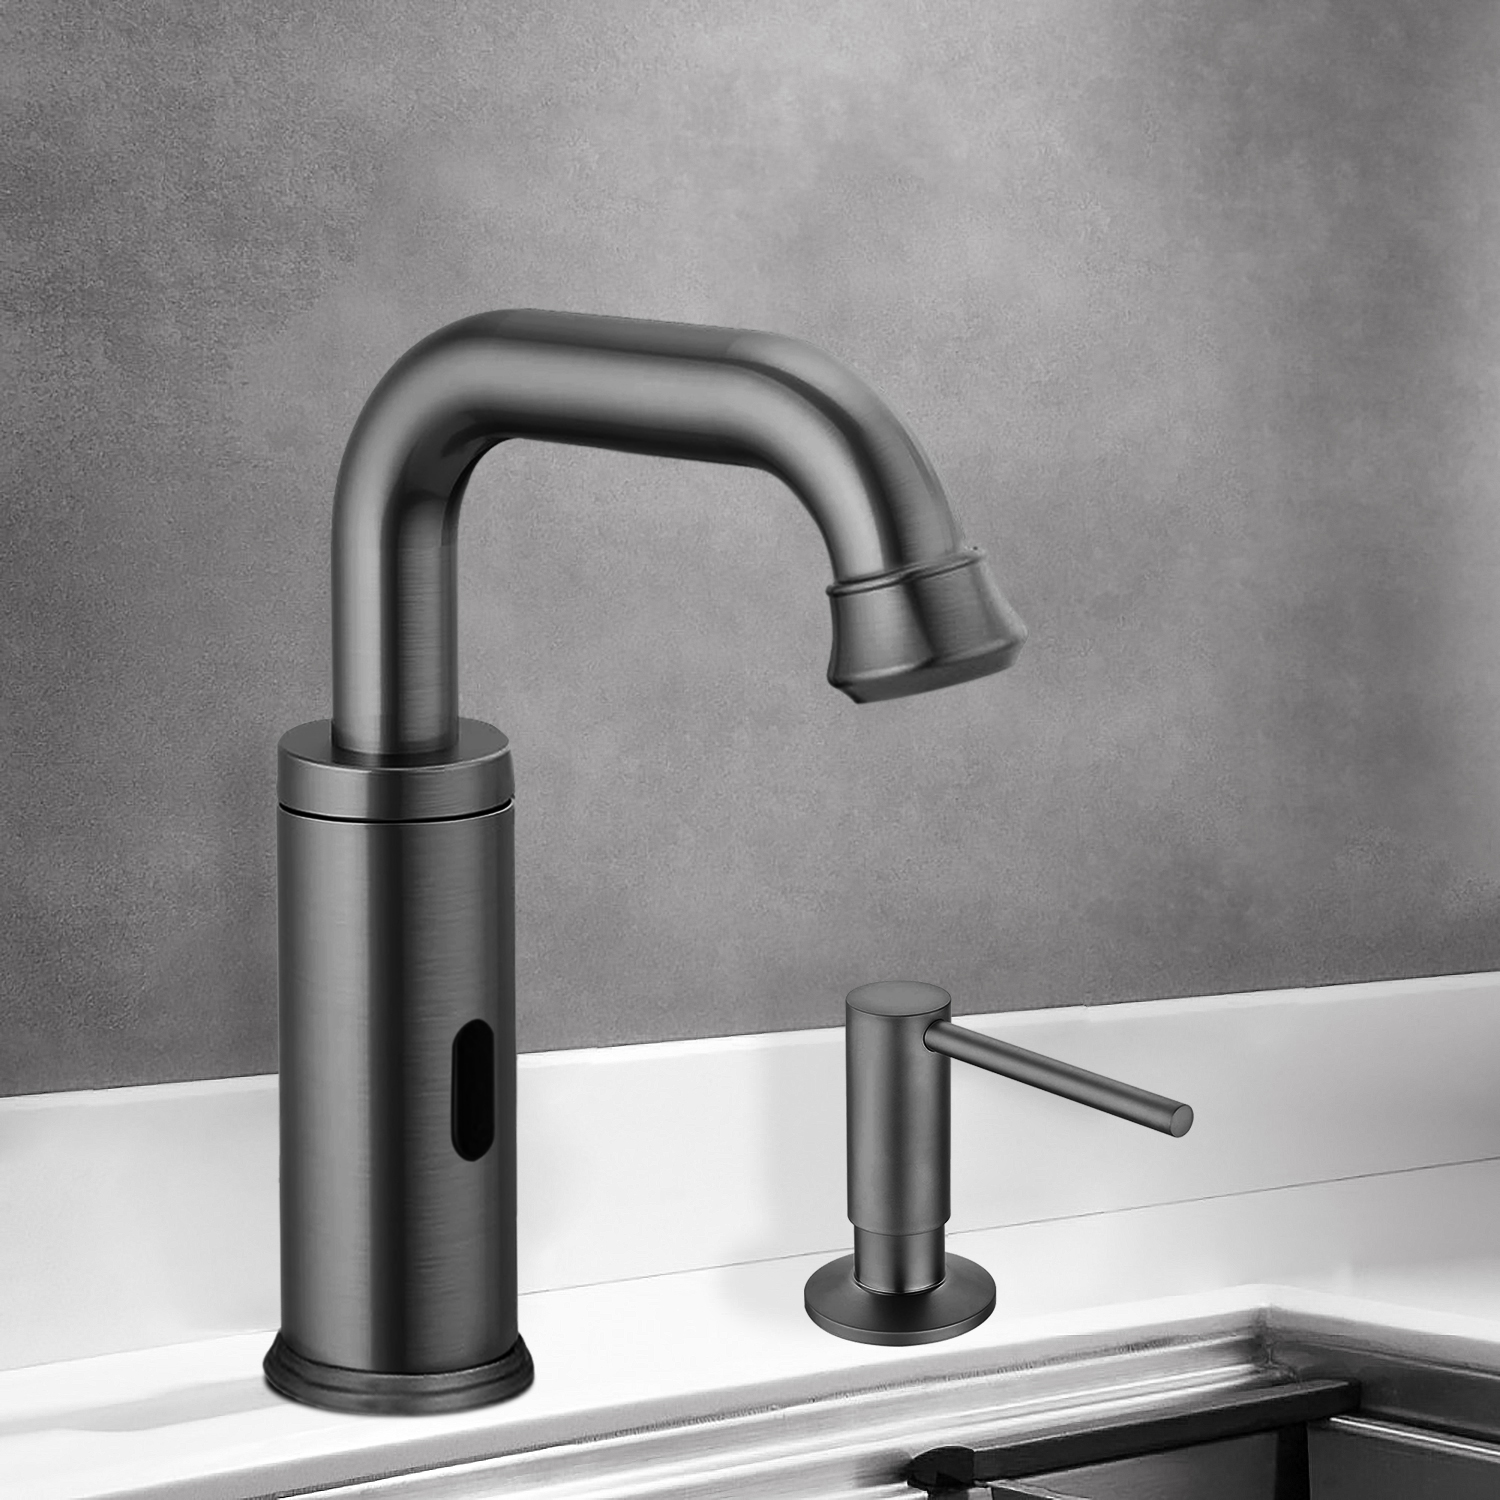 The Dark Oil Rubbed Bronze Bathselect